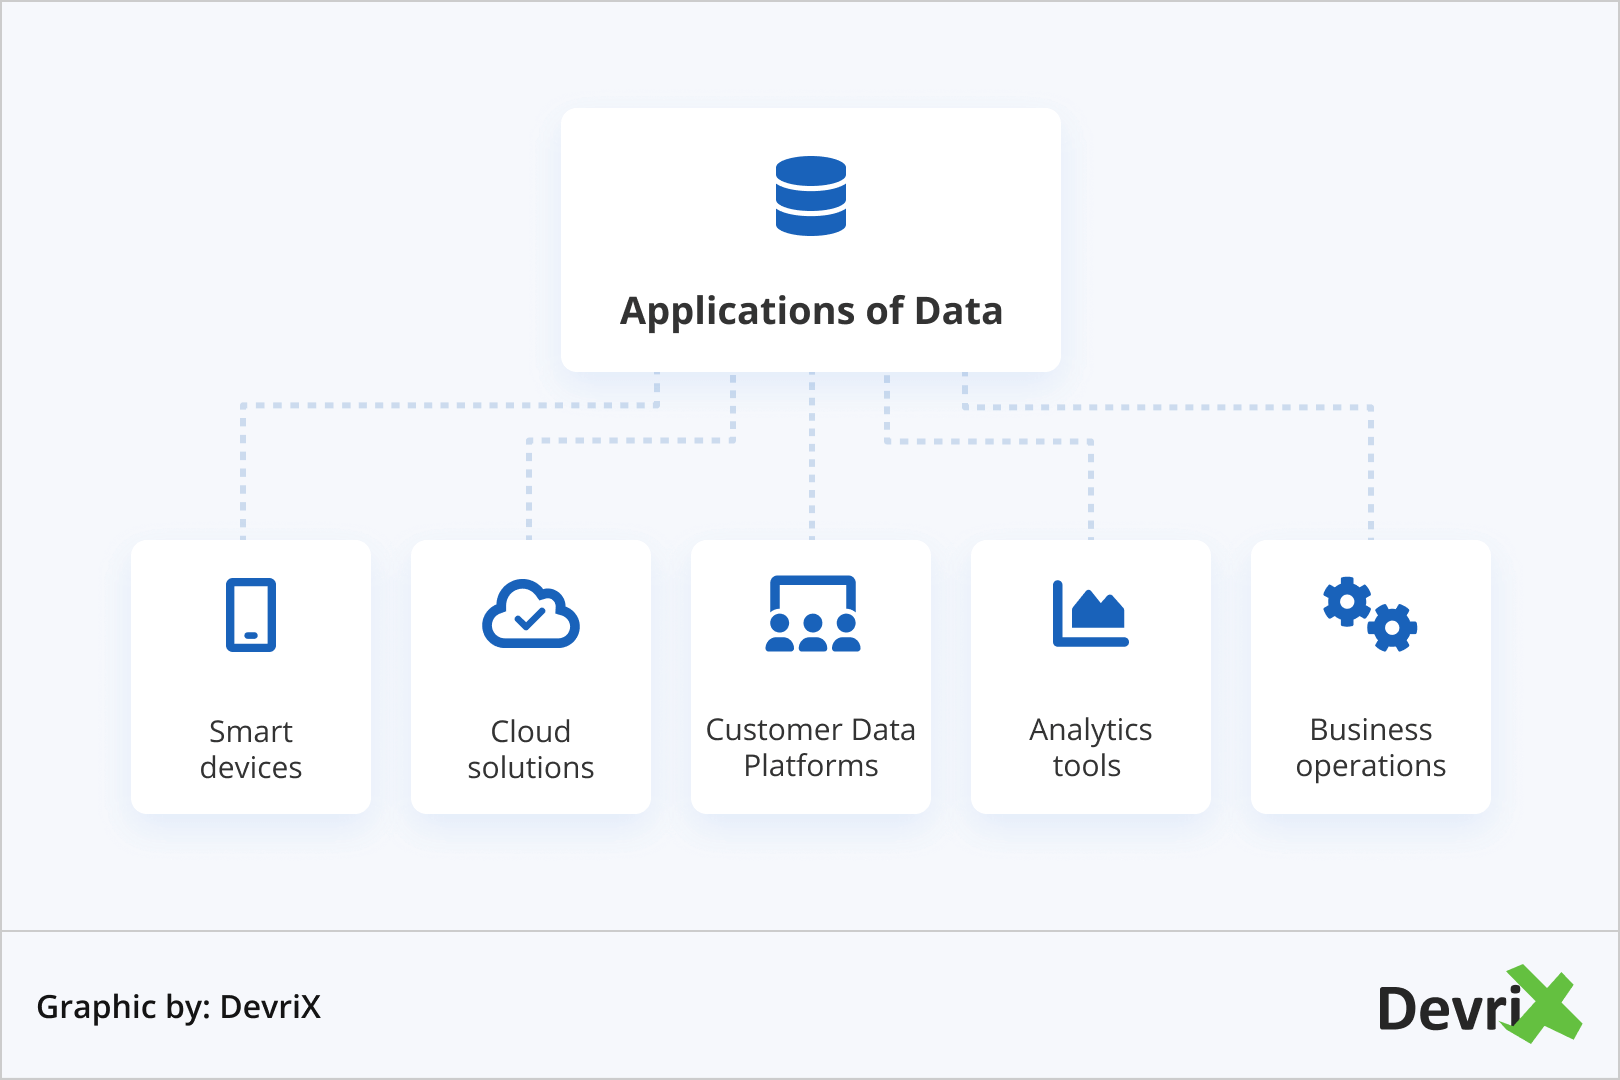 Applications of Data